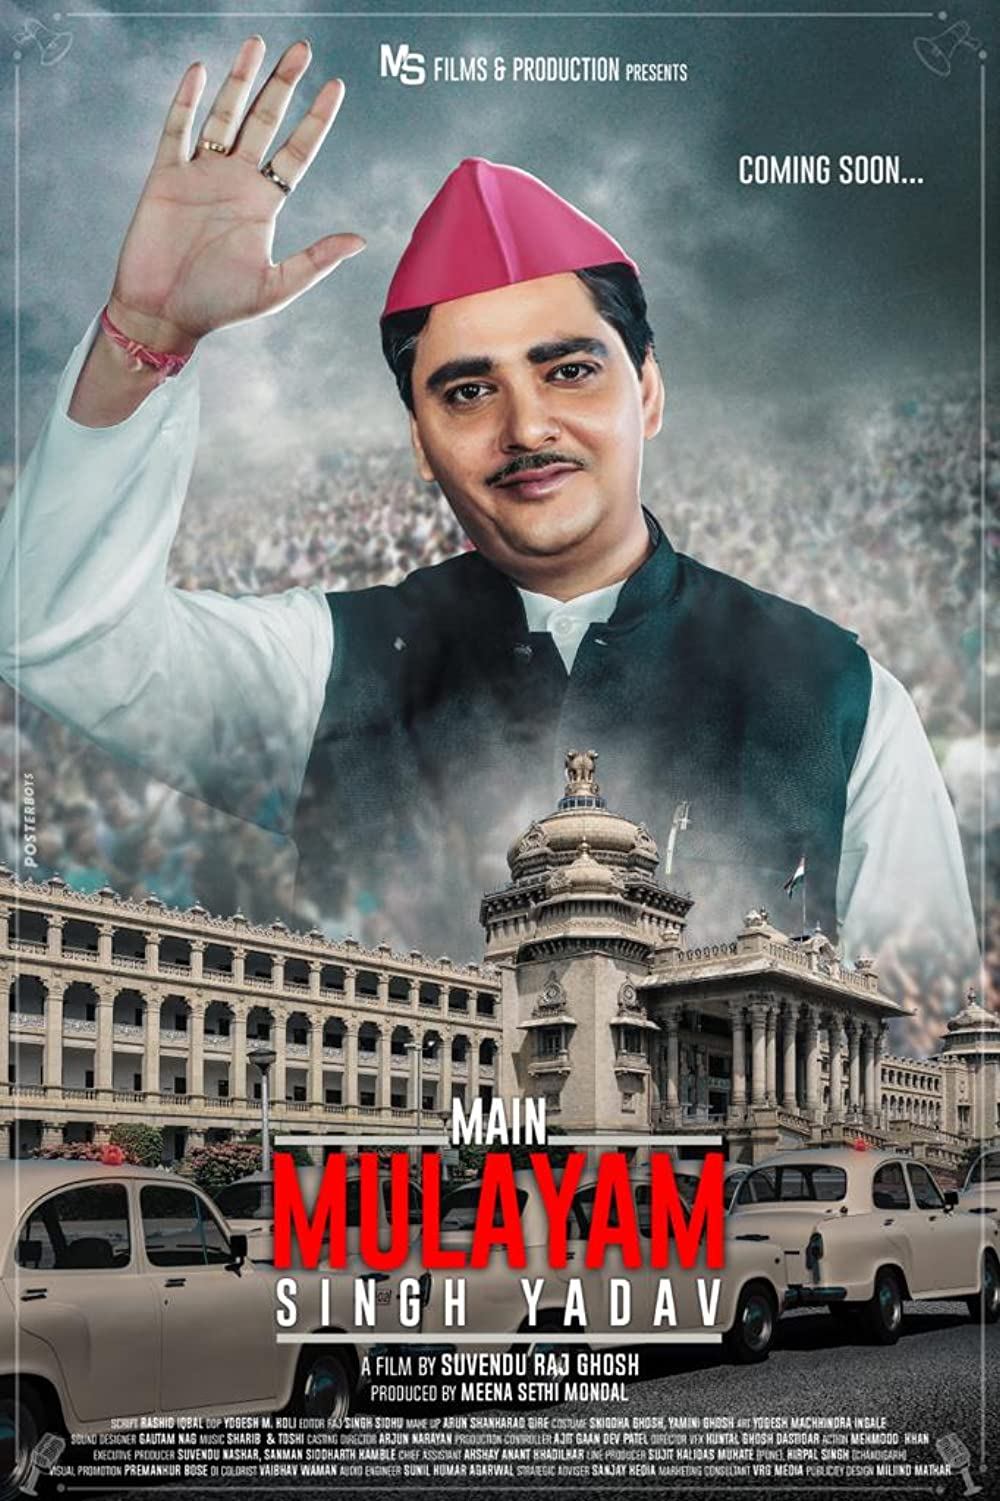 Main Mulayam Singh Yadav 2021 Hindi Full Movie 440MB HDRip Download